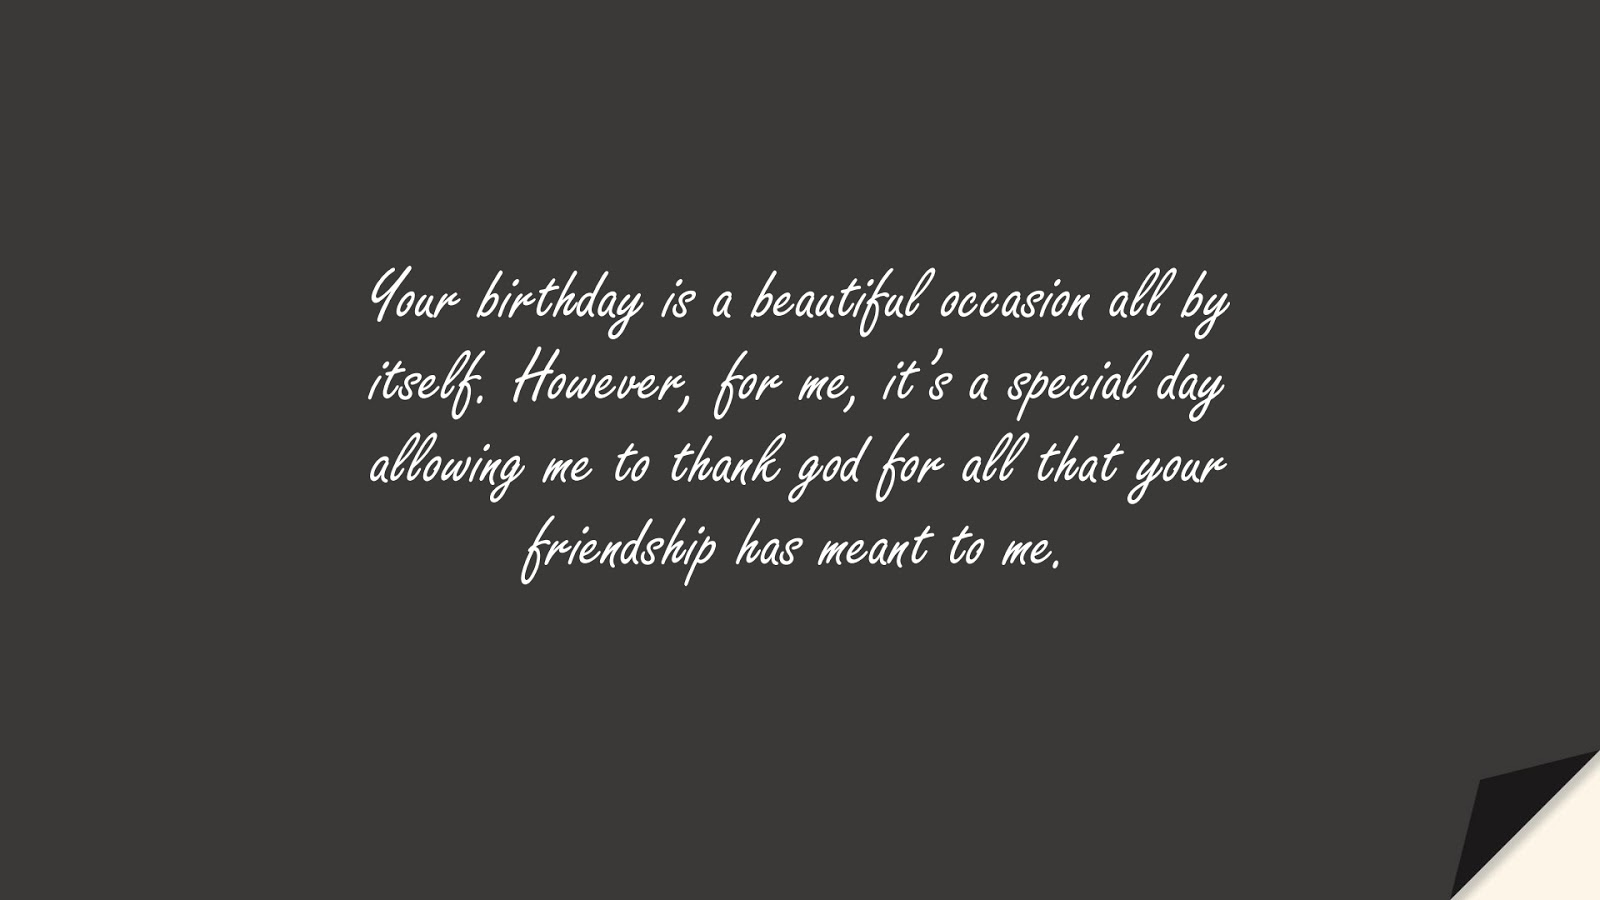 Your birthday is a beautiful occasion all by itself. However, for me, it's a special day allowing me to thank god for all that your friendship has meant to me.FALSE